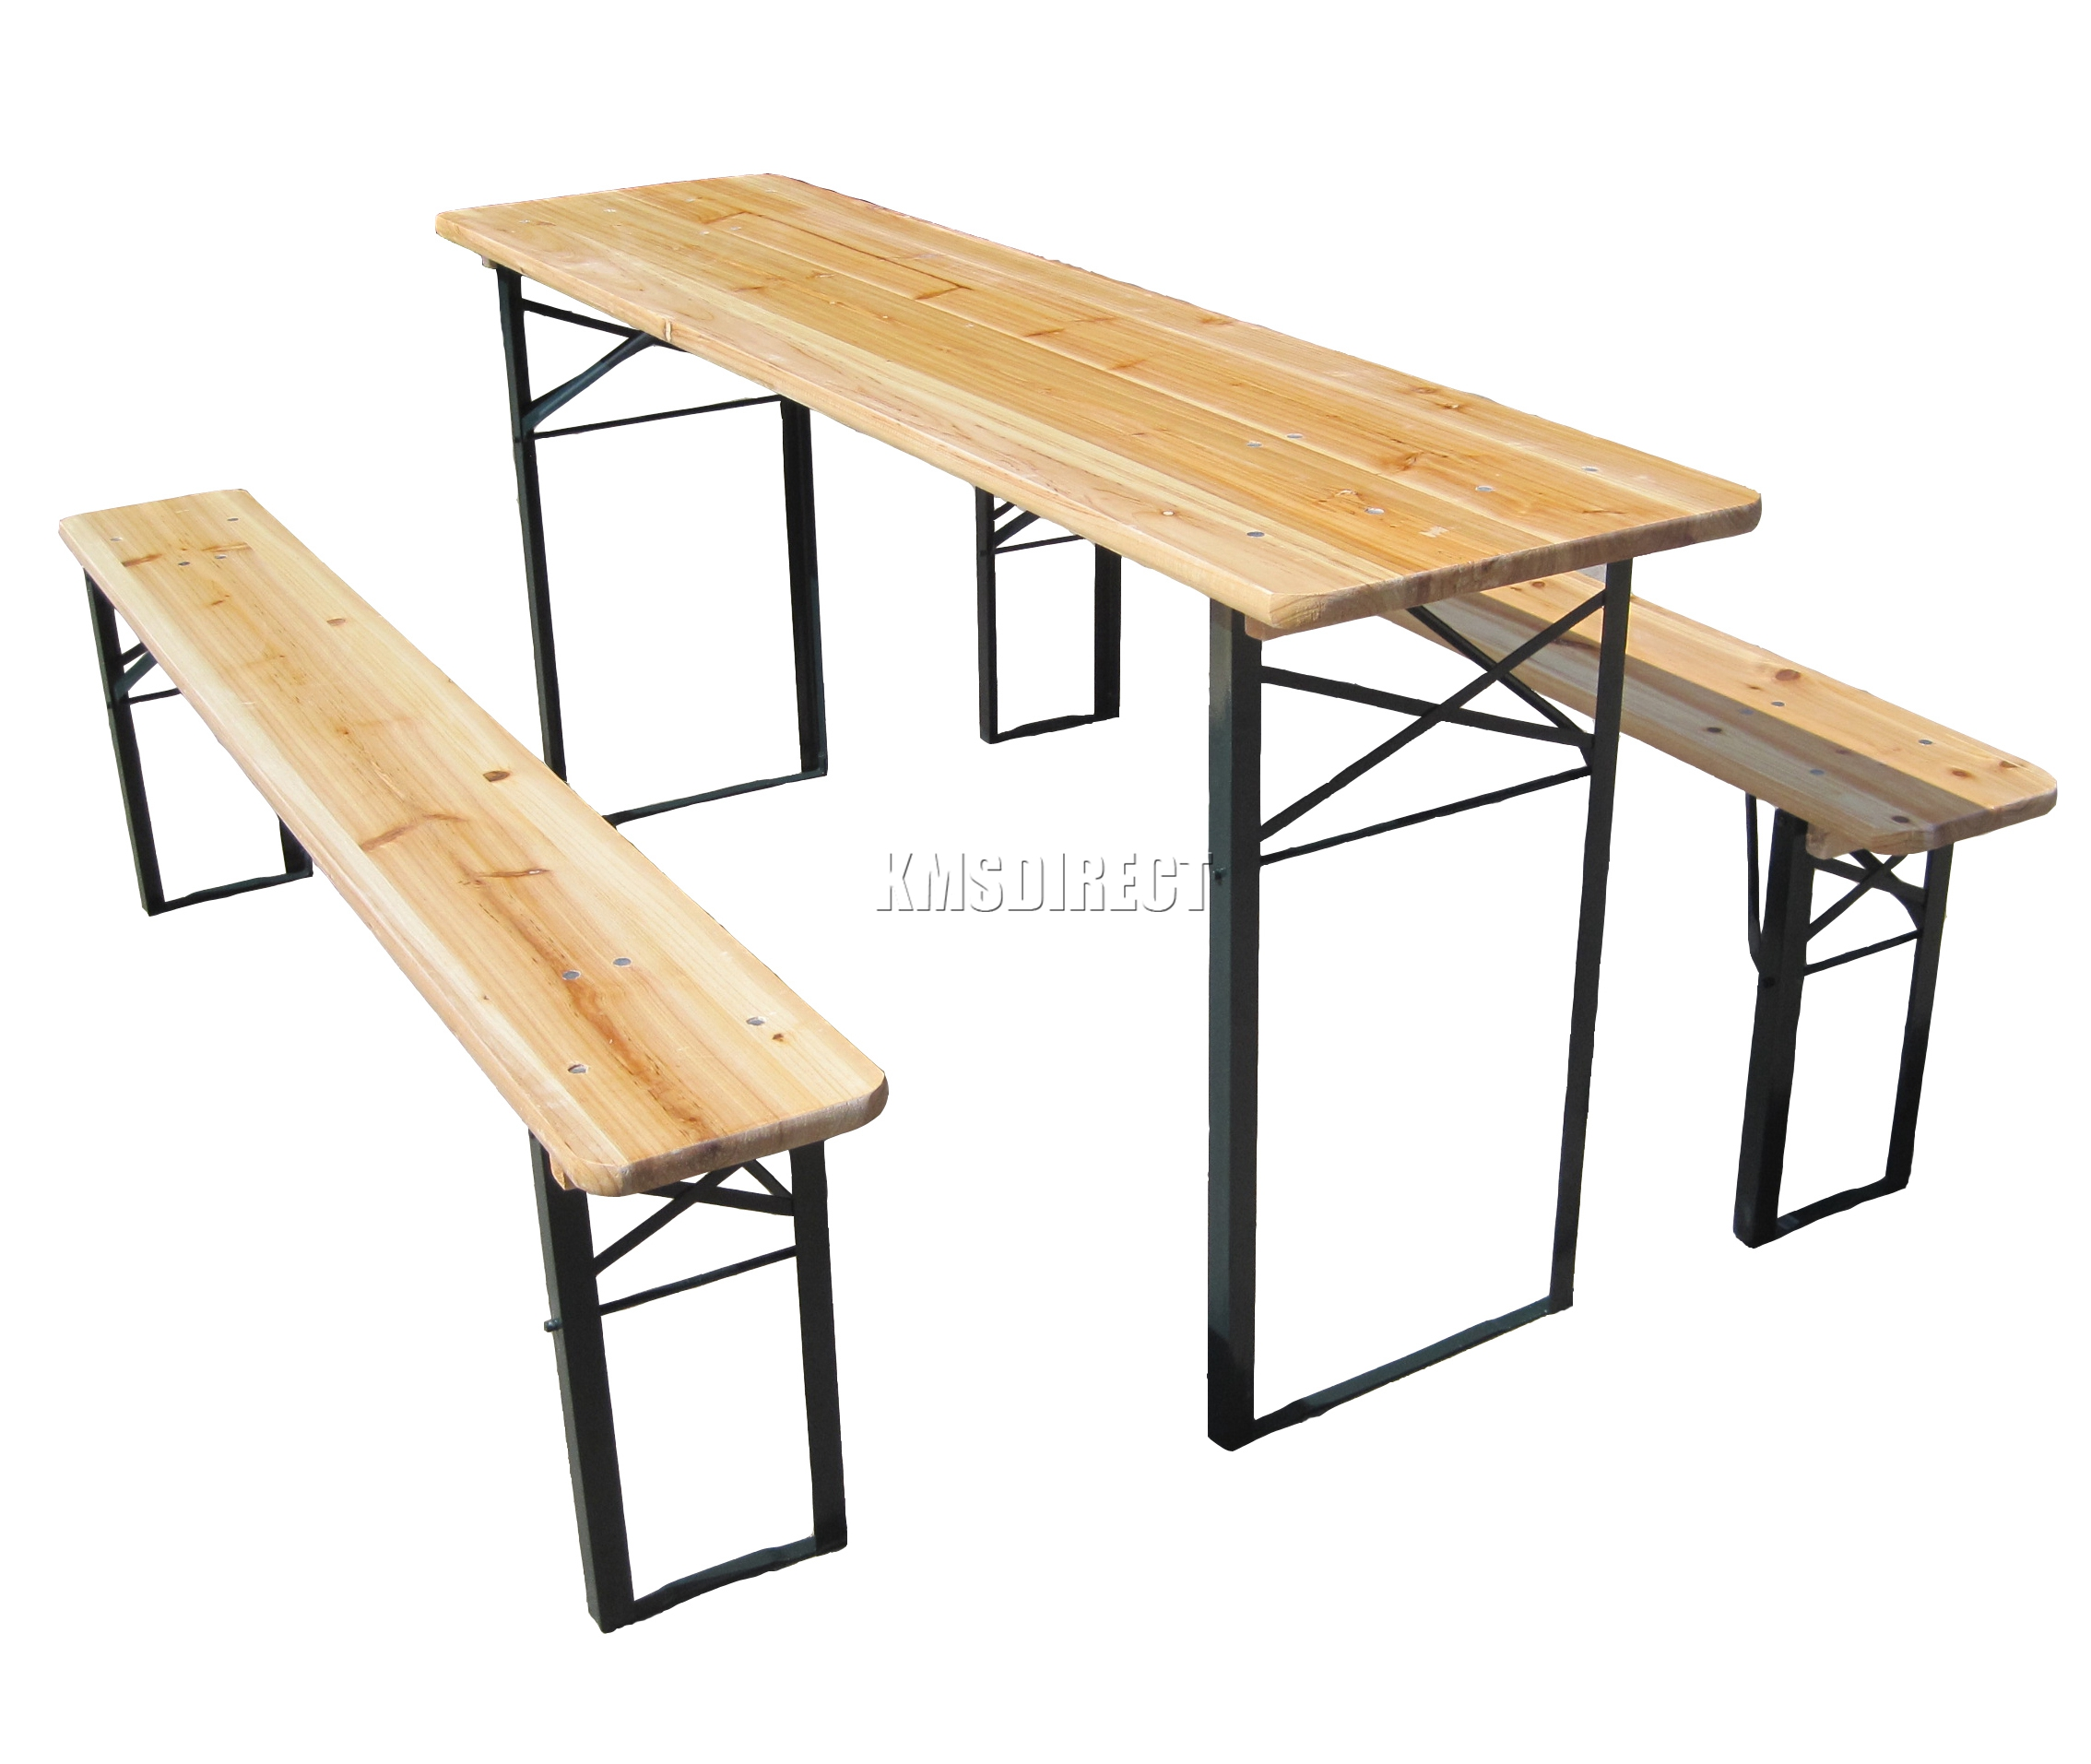 Outdoor wooden folding beer table bench set trestle garden for Garden table and chairs